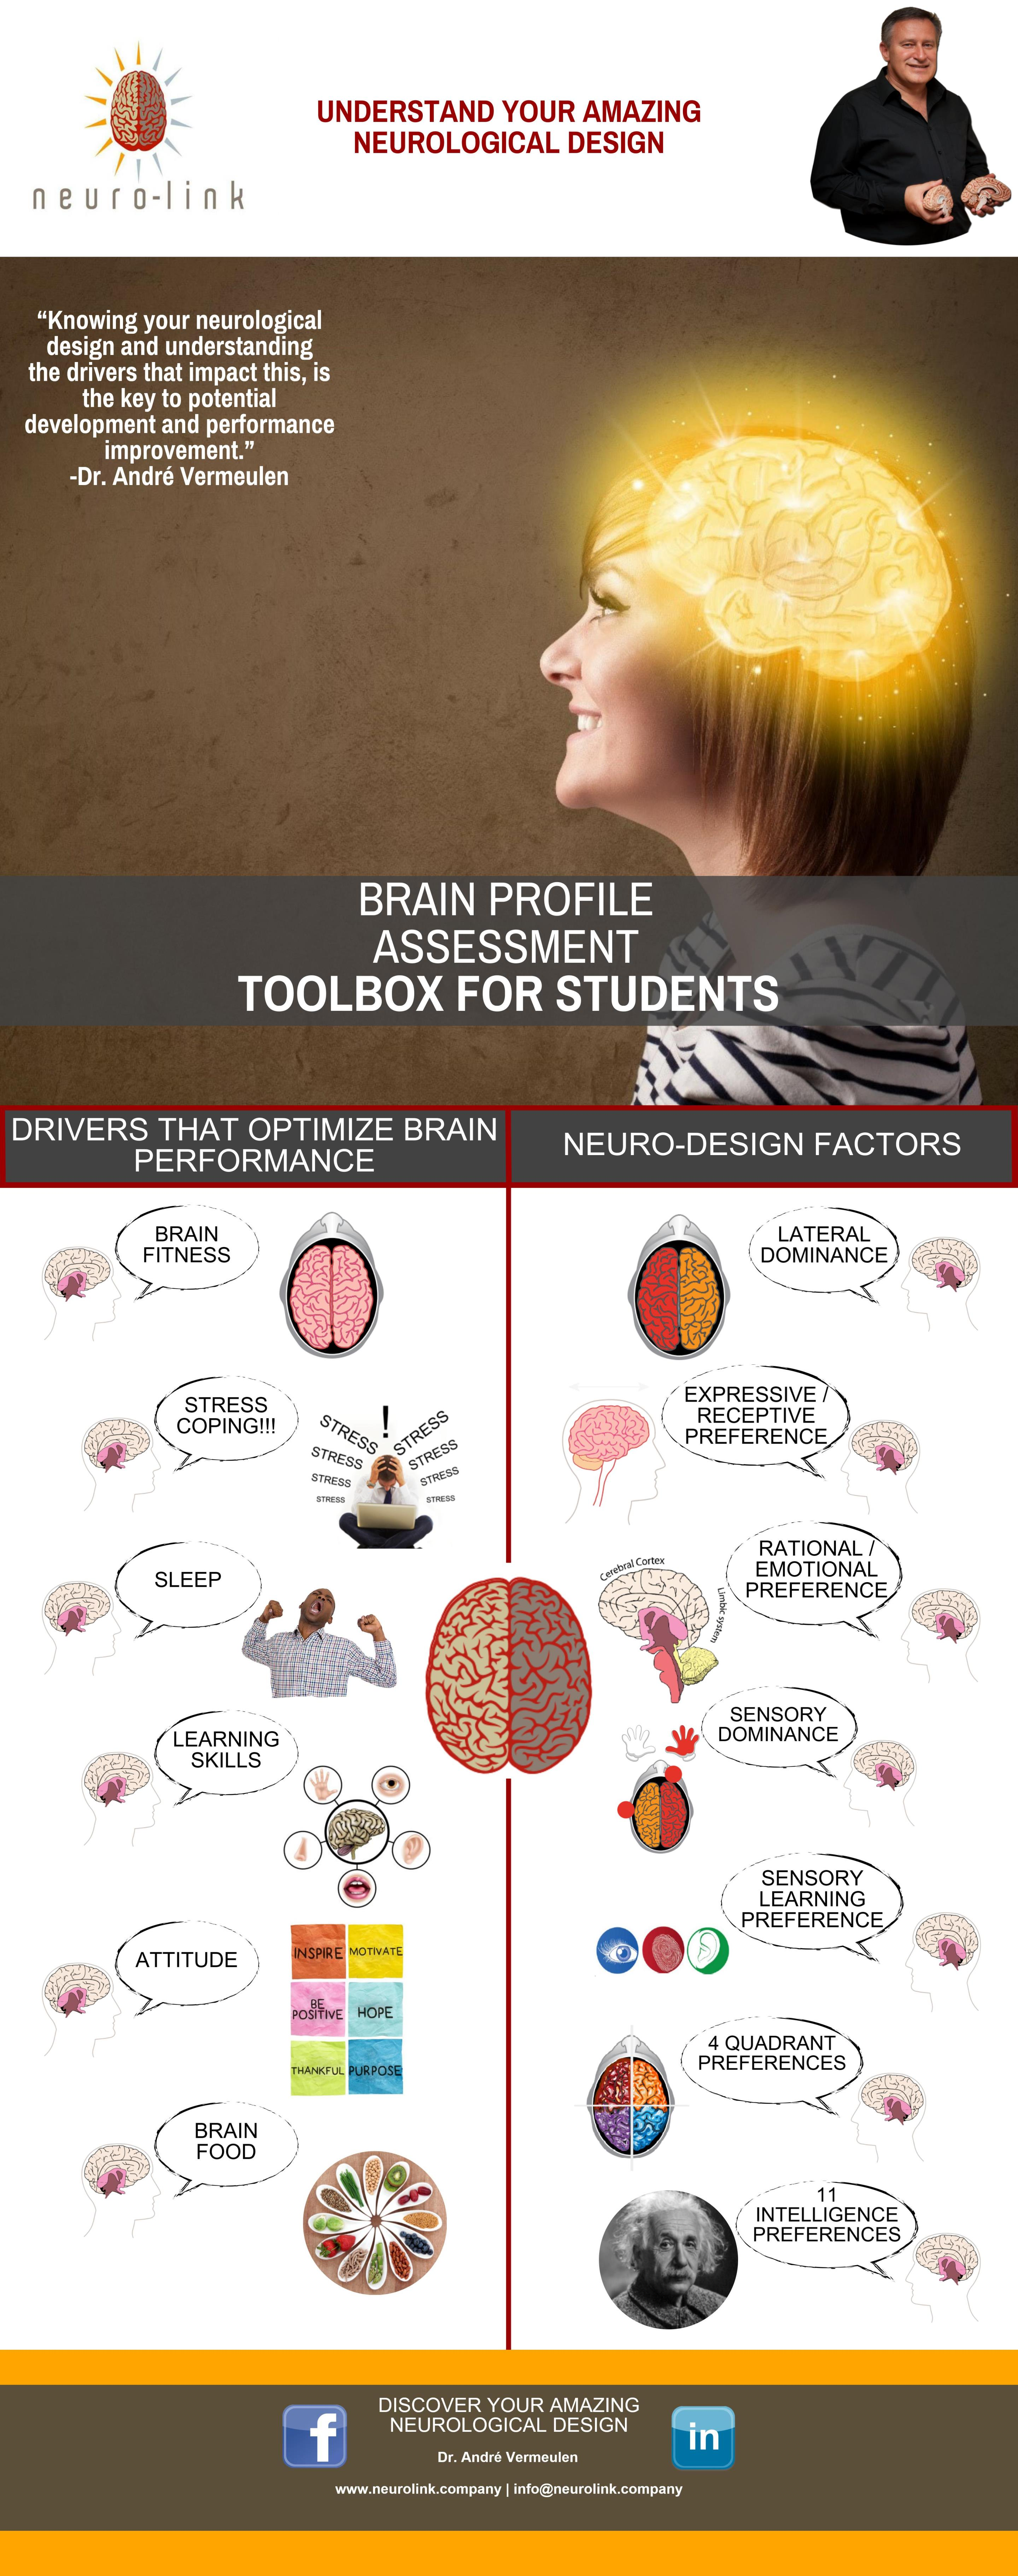 your-amazing-neurological-design-toolbox-for-students